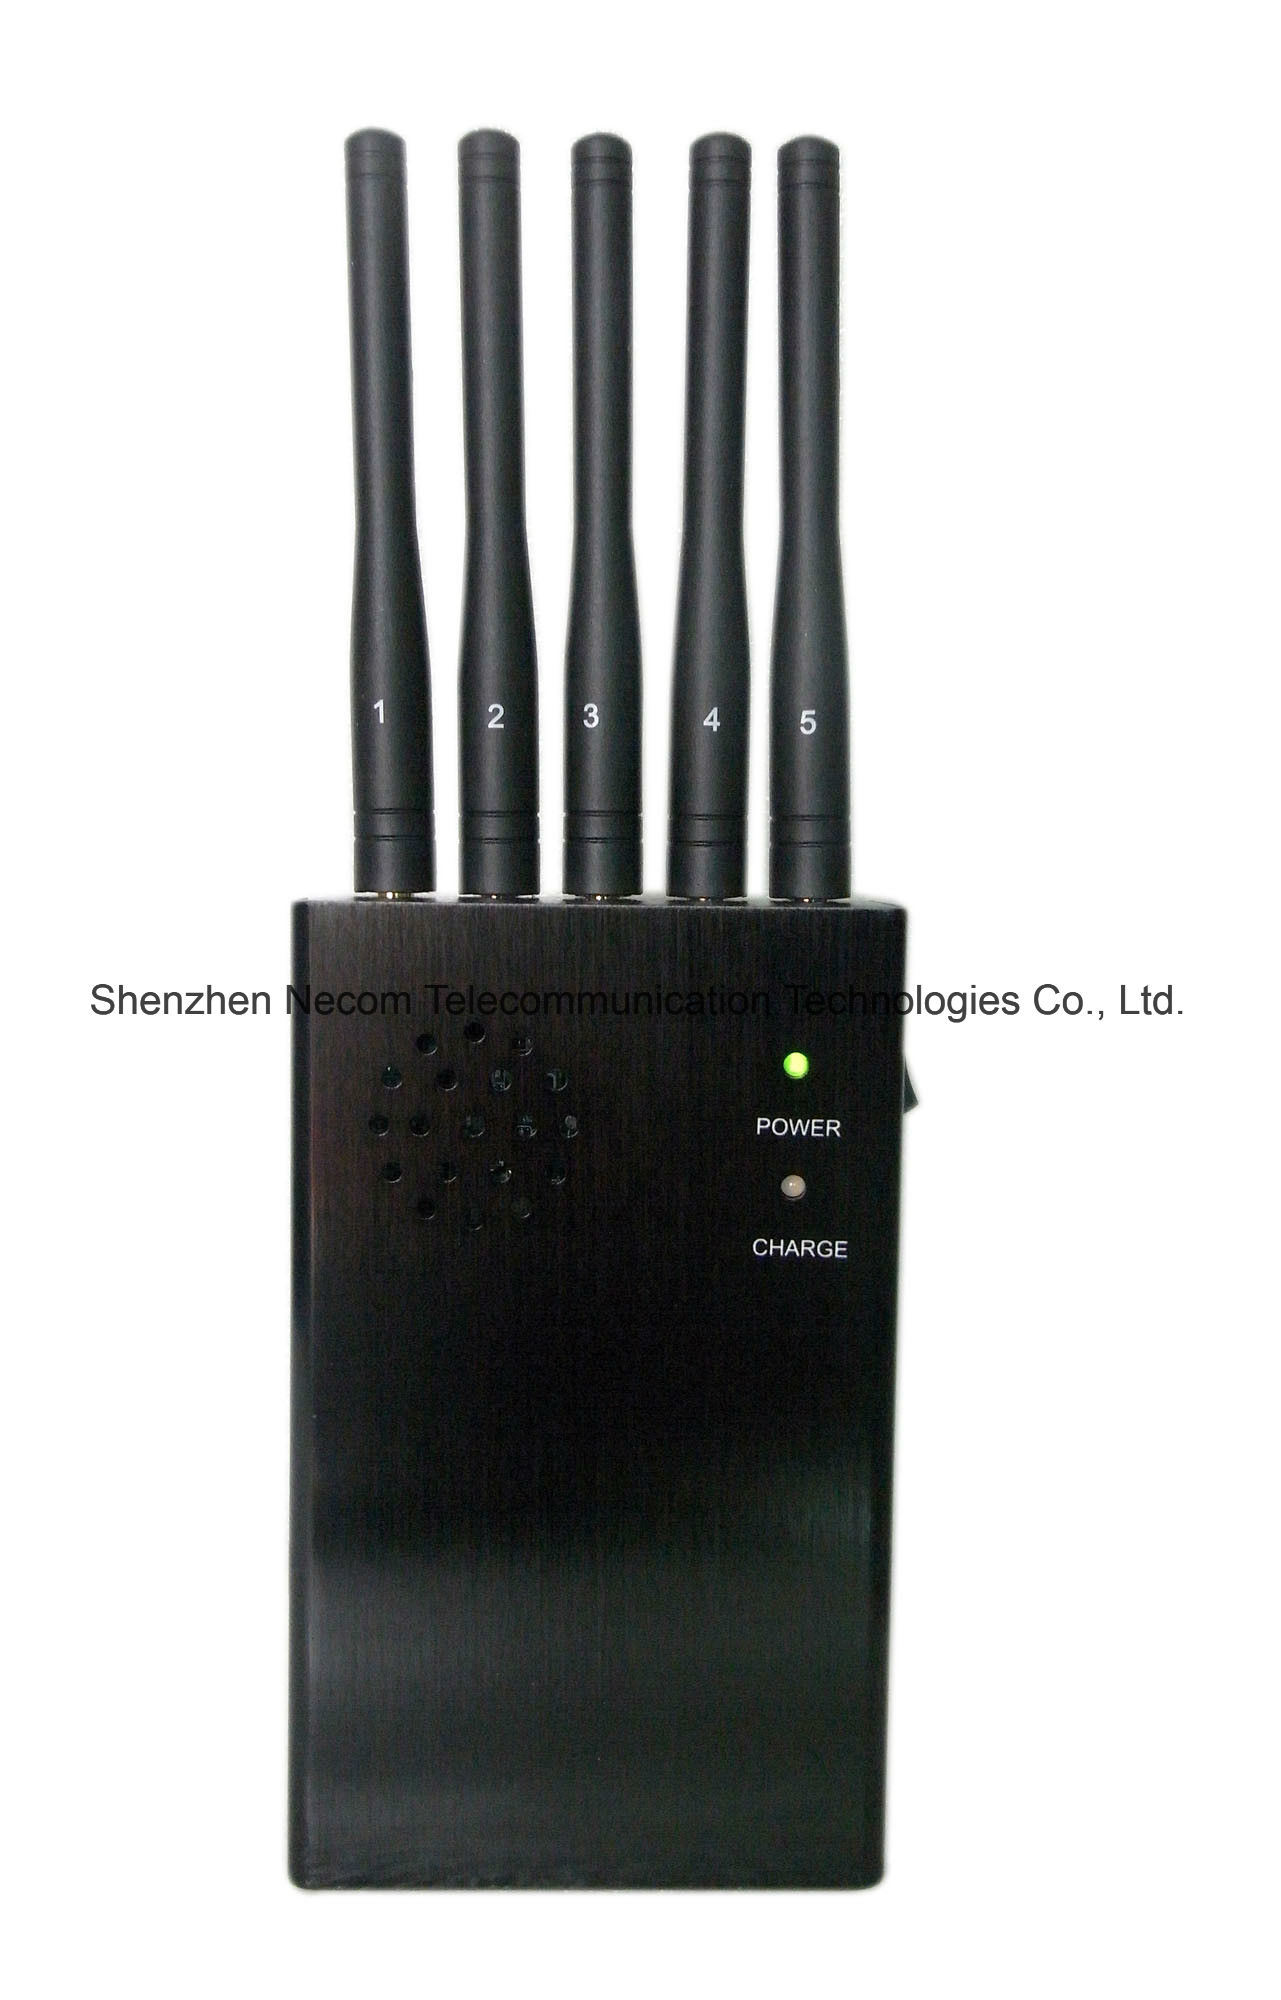 jammer fun park spring hill - China 5 Antenna Handheld Phone Jammer & WiFi Jammer & GPS Jammer, 5bands Handheld Jammer for Cellphone, Wi-Fi, 433, 315 Remote Control Jammer - China 5 Band Signal Blockers, Five Antennas Jammers